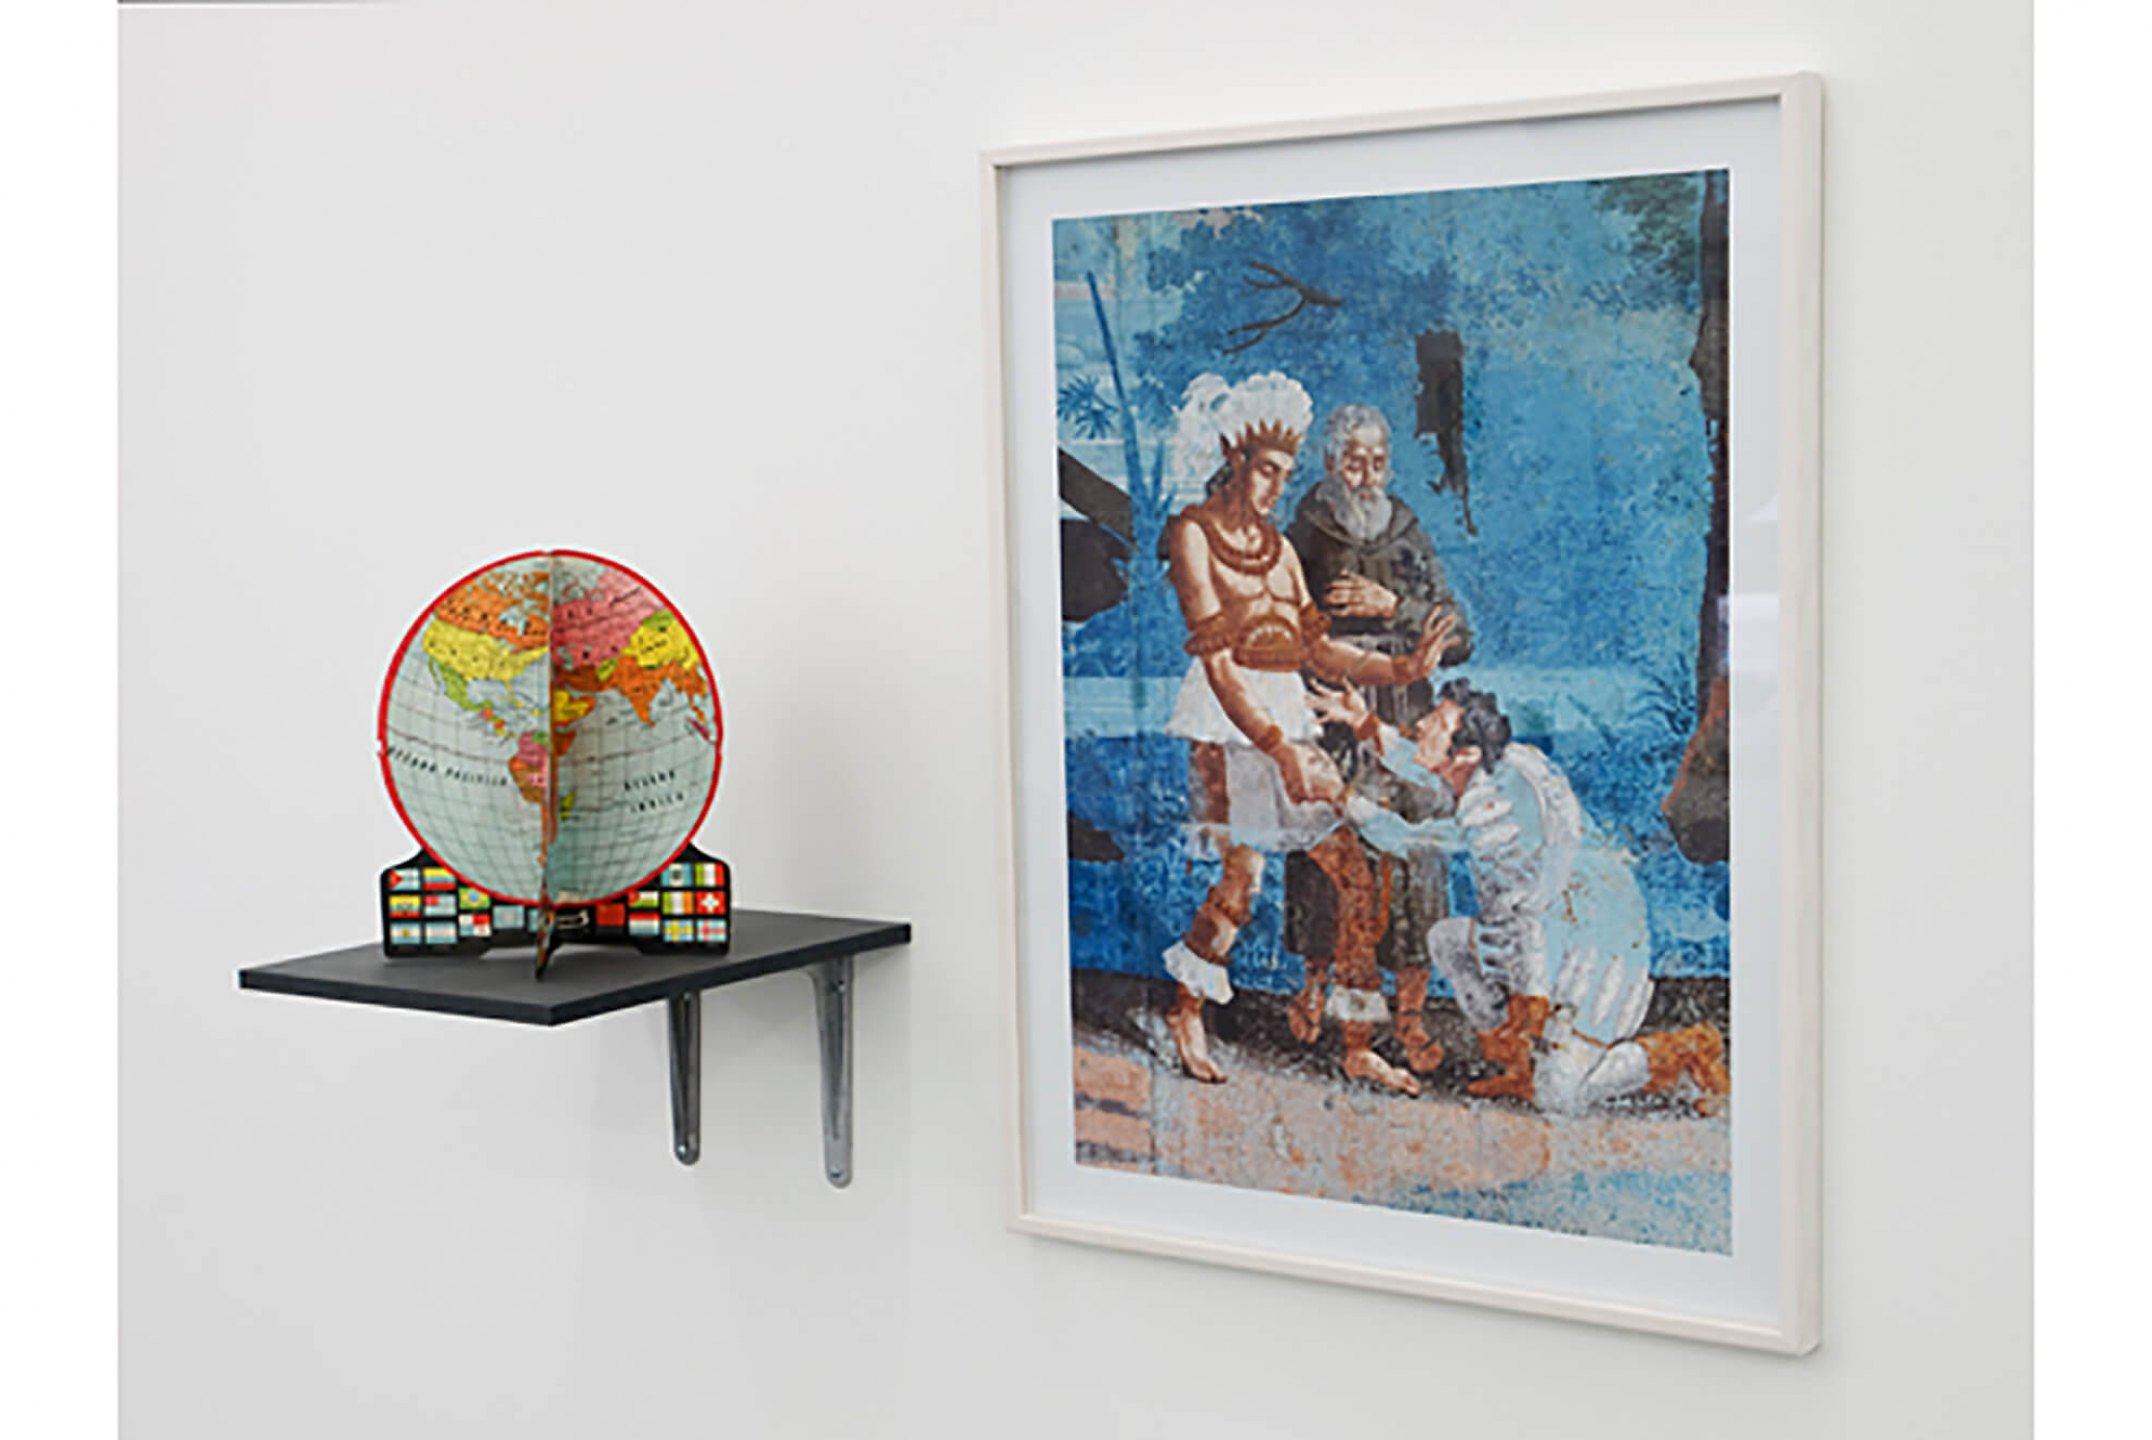 Runo Lagomarsino,<em>Las Casas is Not a Home,</em> 2008/2010,Installation withobjects, sculpture, video, drawings prints and shelves, variable dimensions - Mendes Wood DM